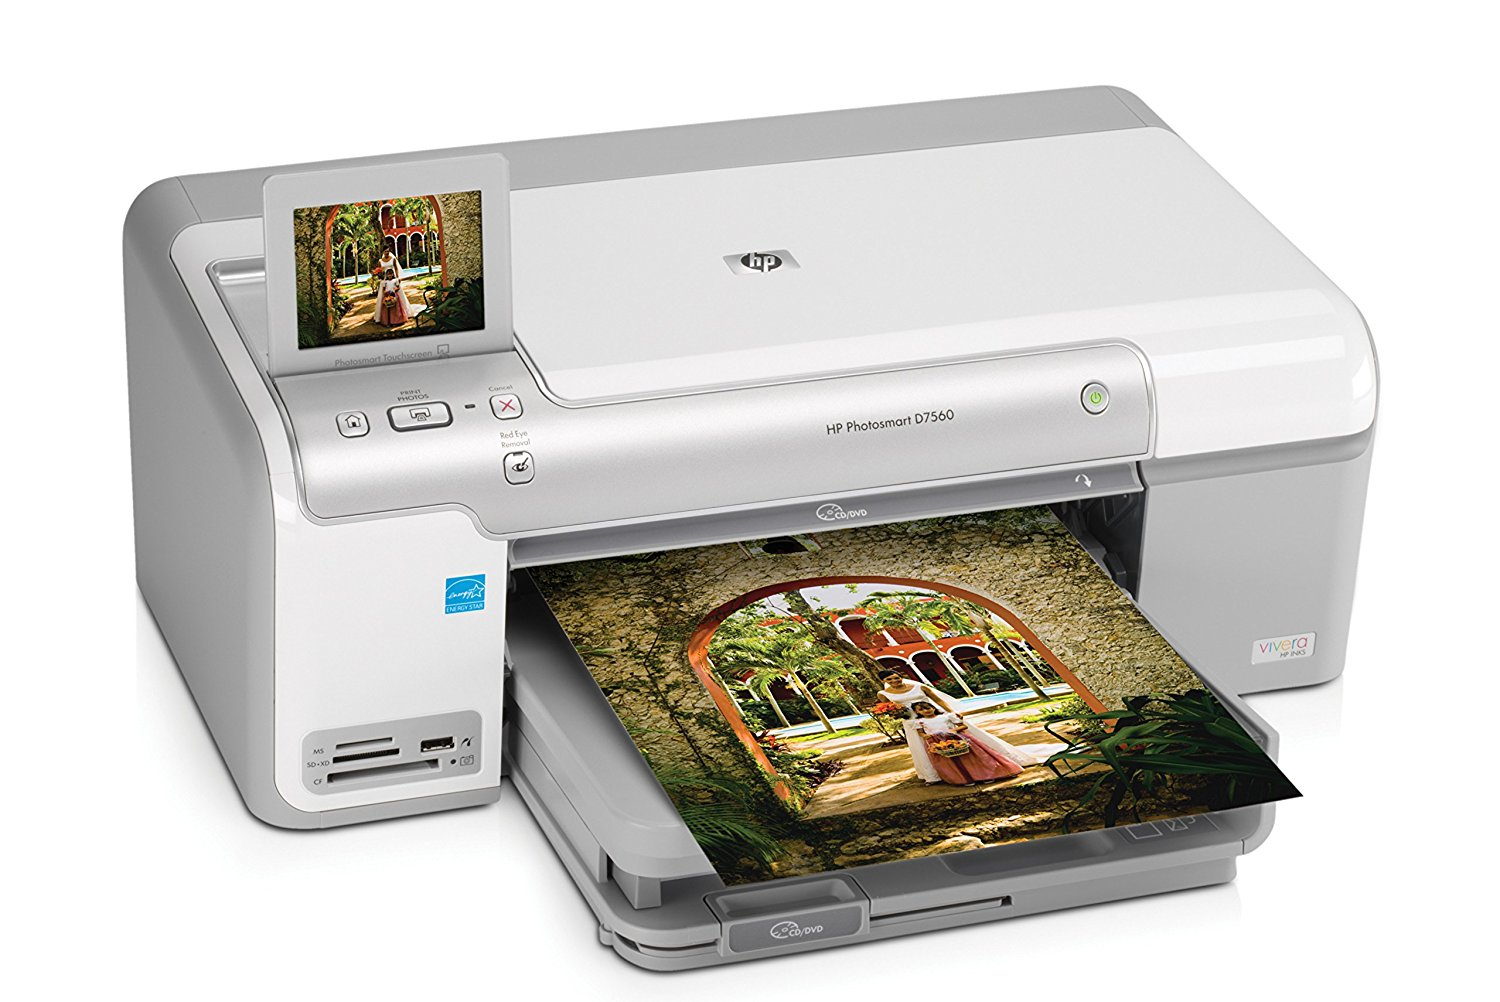 Hp photosmart d7560 printer best buy